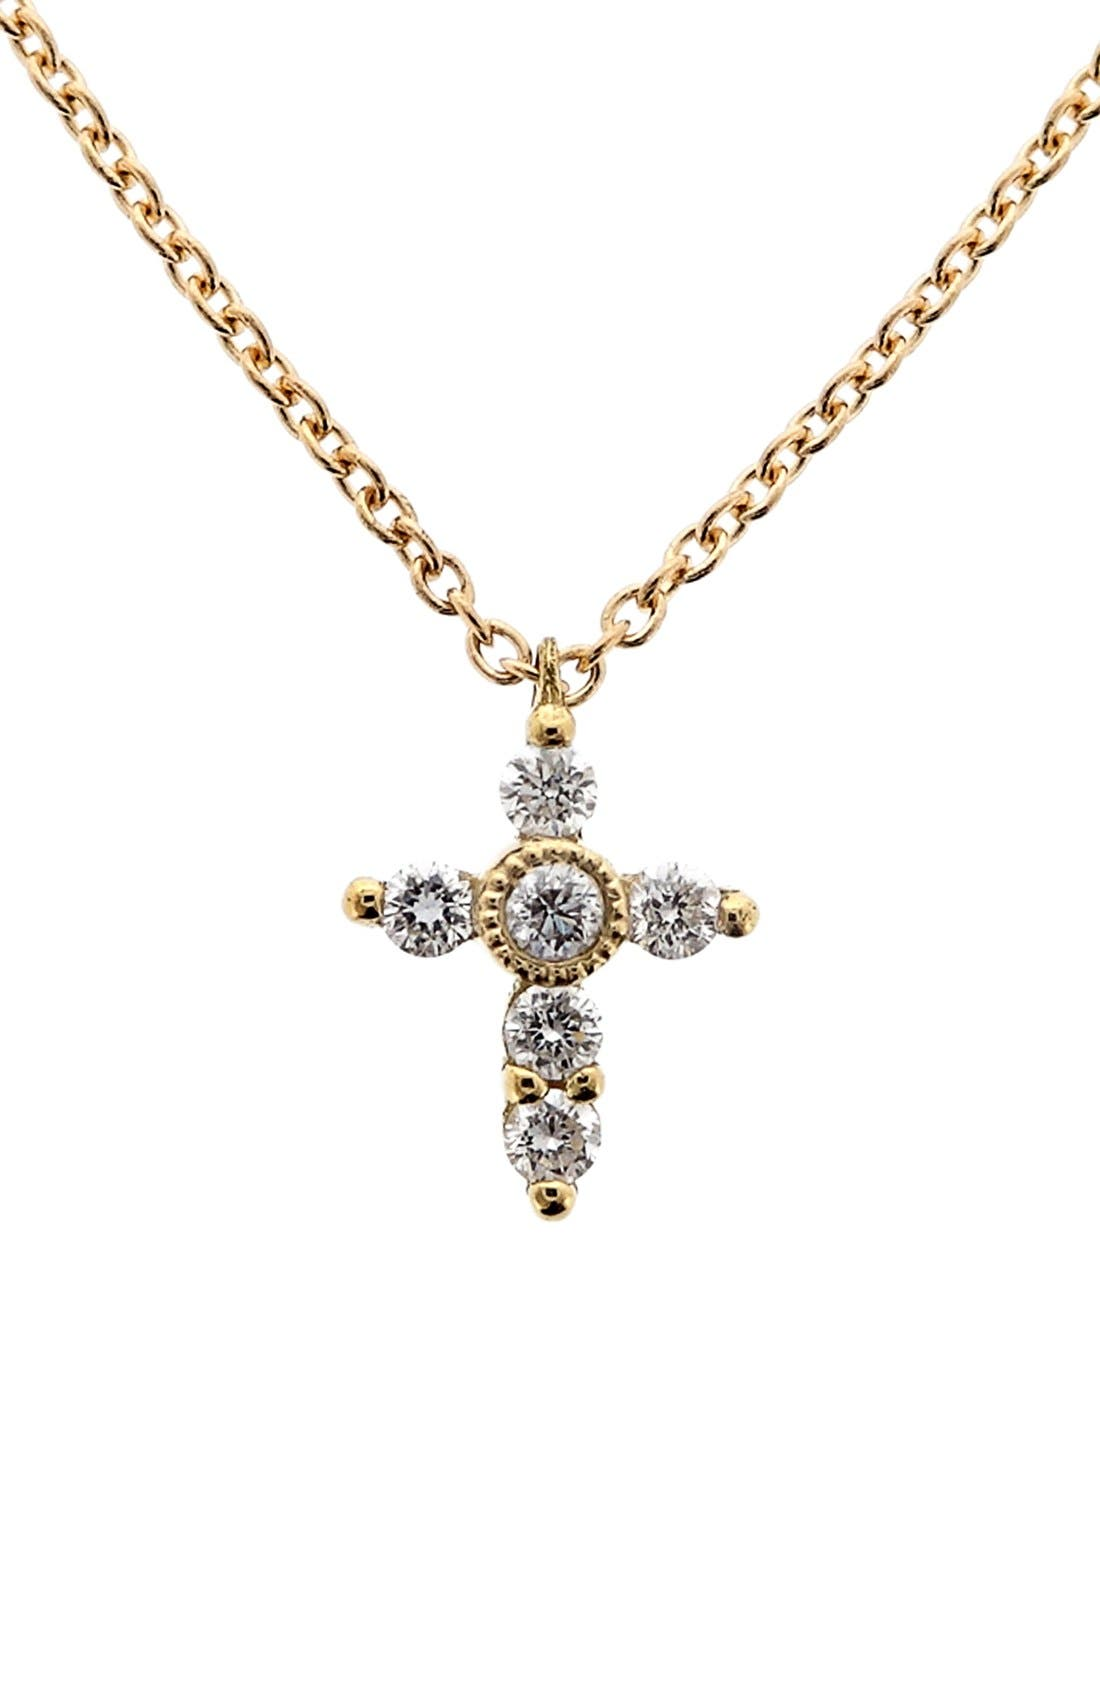 A sentimental gift for a loved one or meaningful personal keepsake, this petite cross pendant is studded with six sparkling diamonds and strung on a delicate chain. Style Name: Bony Levy Diamond Mini Cross Necklace (Nordstrom Exclusive). Style Number: 5252991. Available in stores.